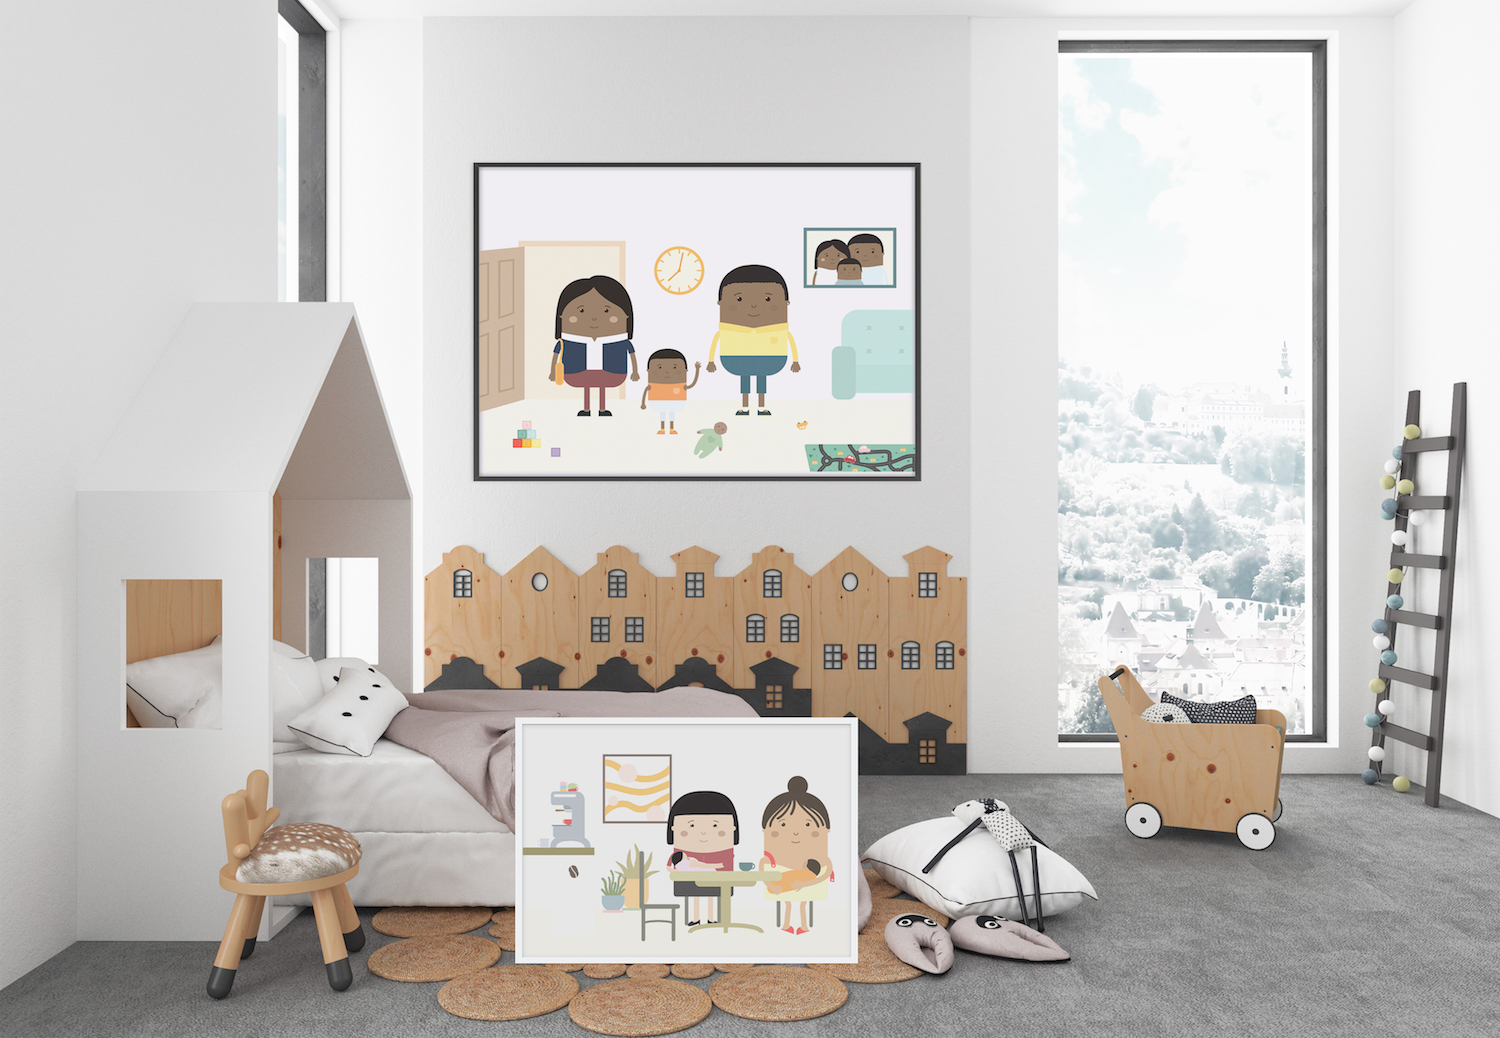 Stay at home dad african american family poster - Skwoodle stereotypes activism feminism - working mum CEO